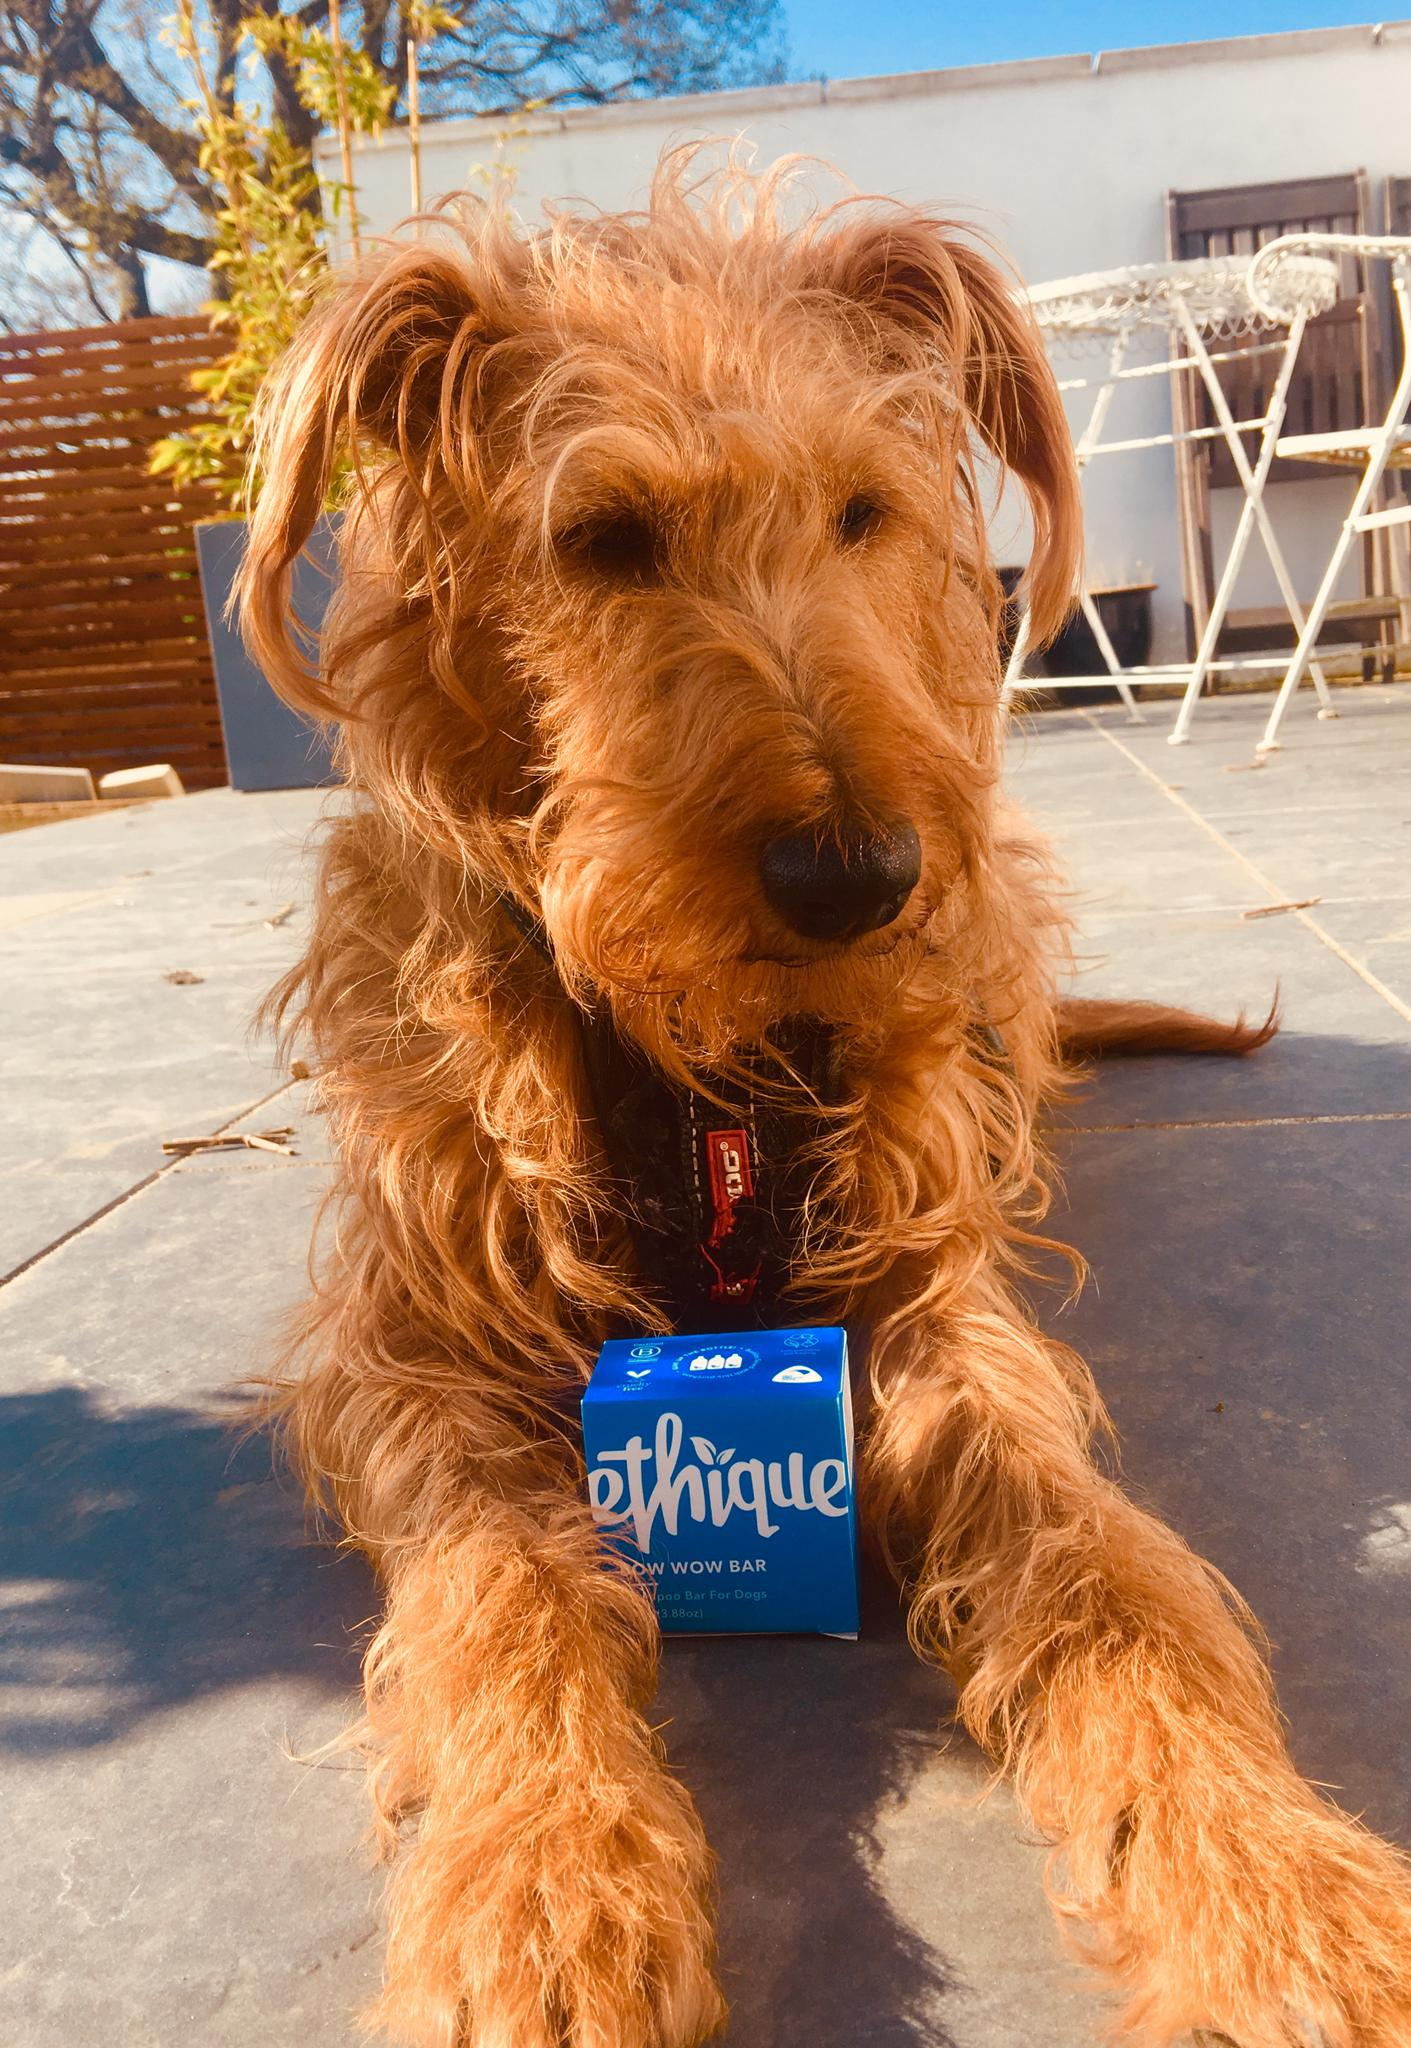 Luna the Irish Terrier and her new Bow Wow Bar of shampoo for dogs.